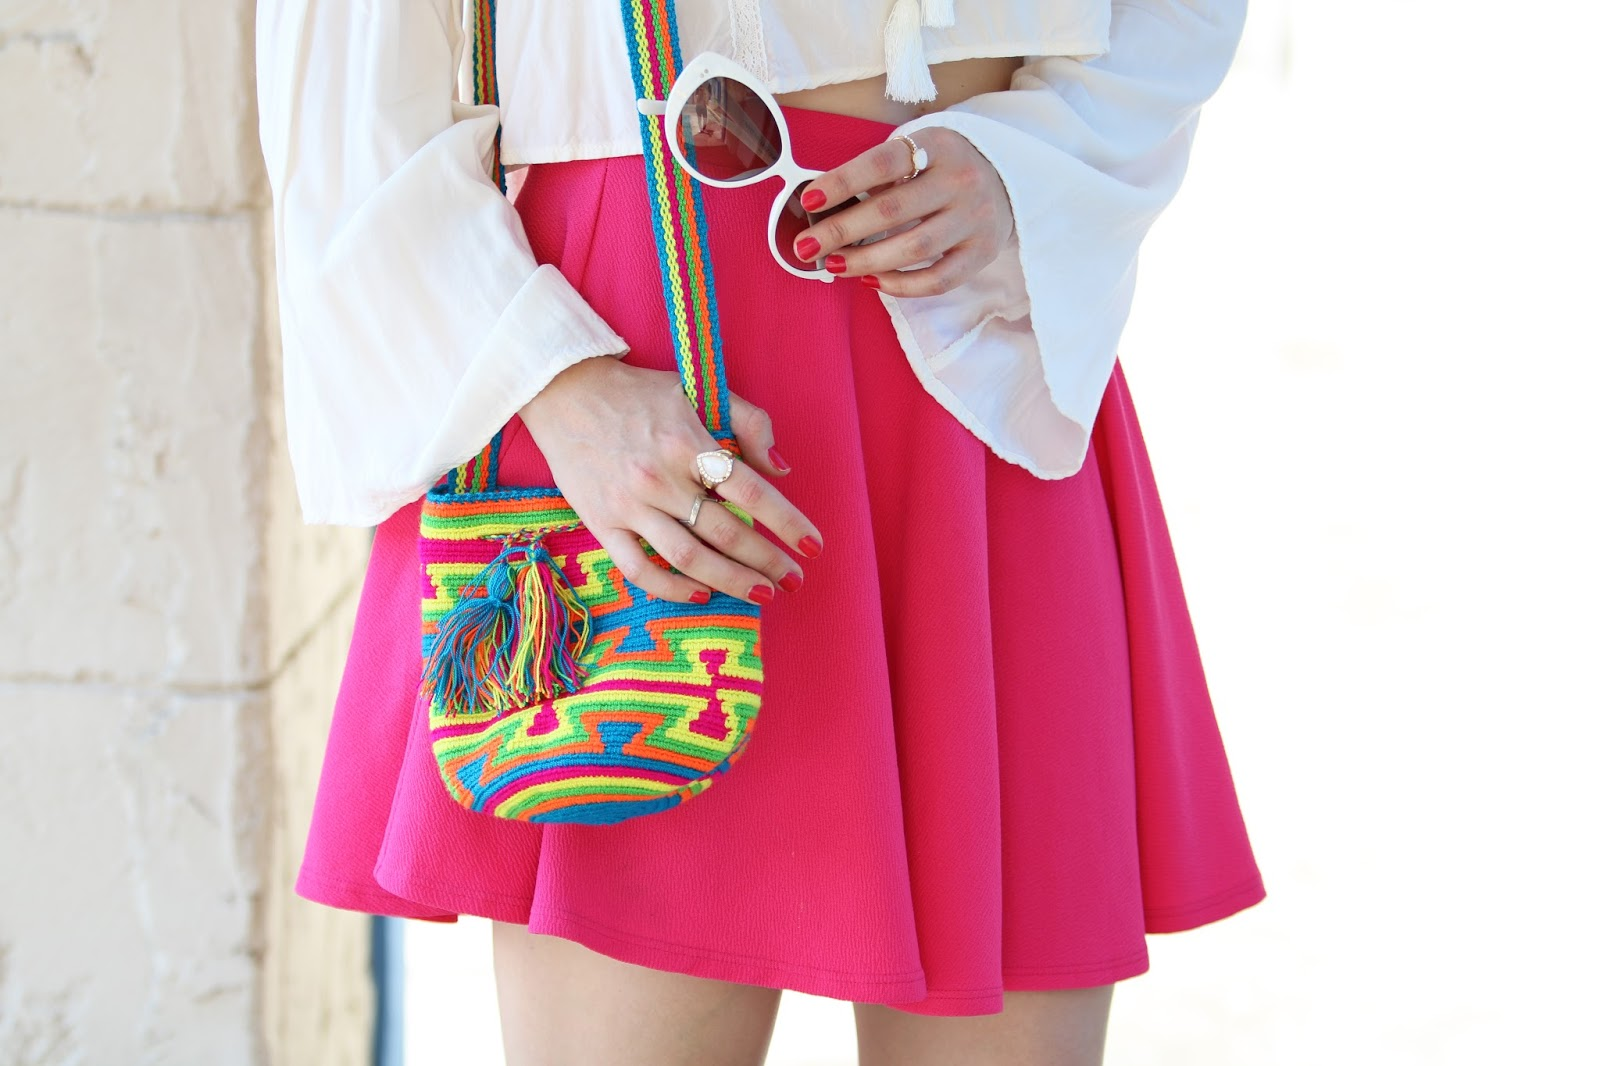 Colorful boho bag outfit